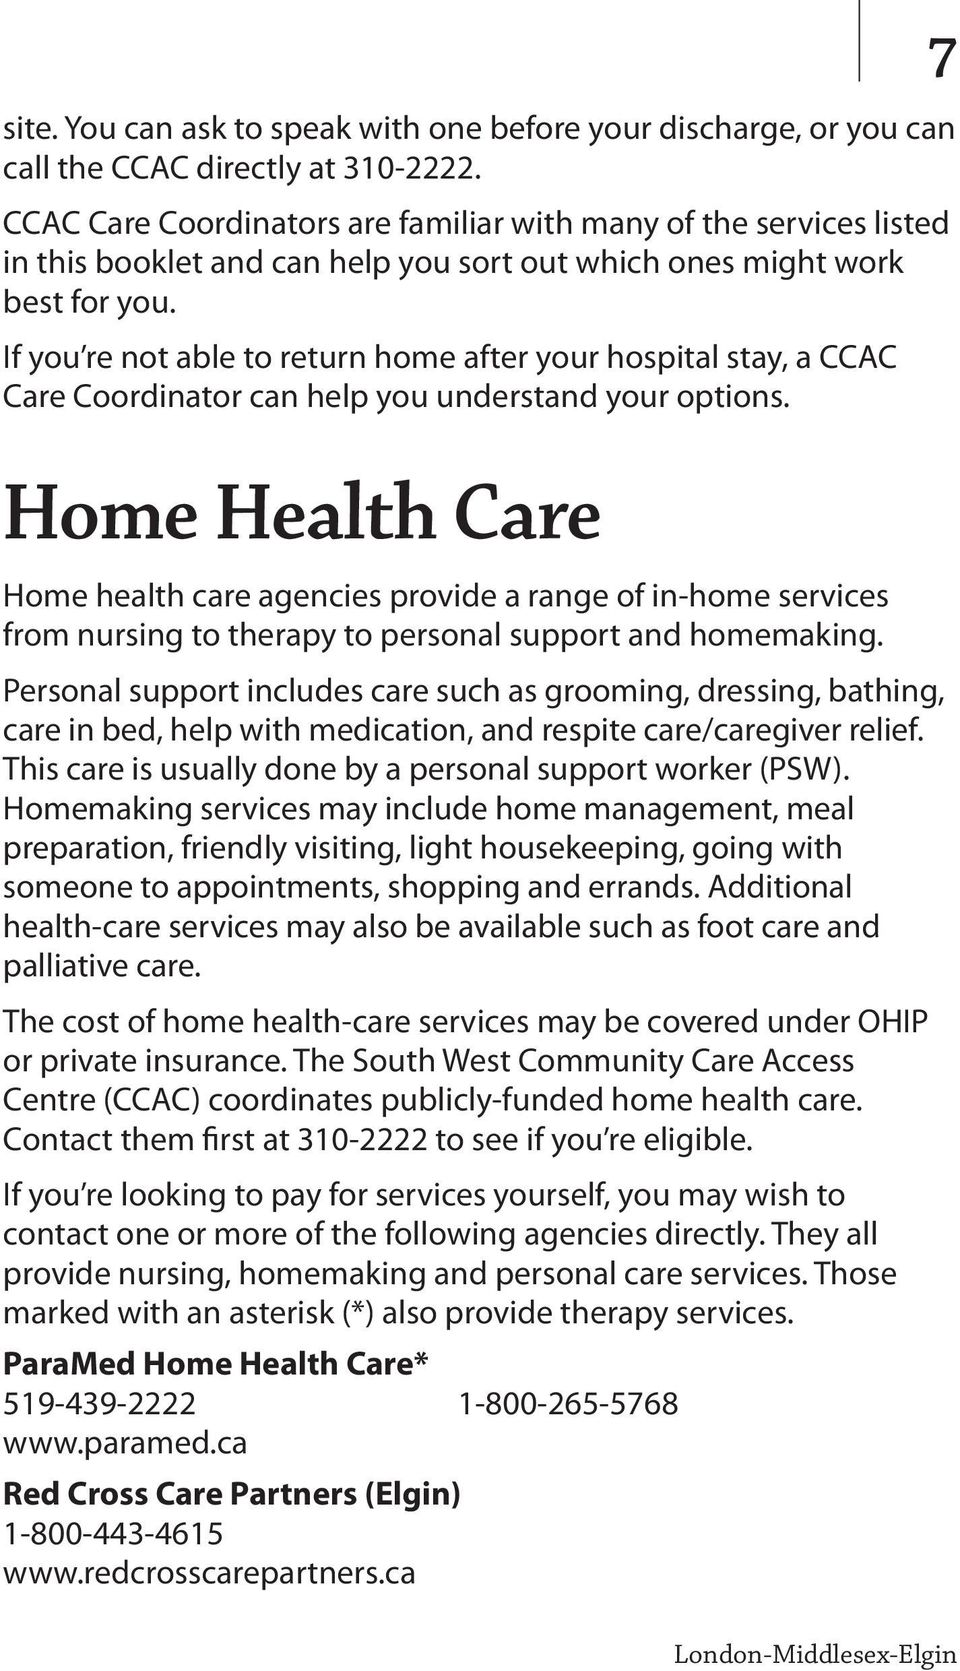 If you re not able to return home after your hospital stay, a CCAC Care Coordinator can help you understand your options.